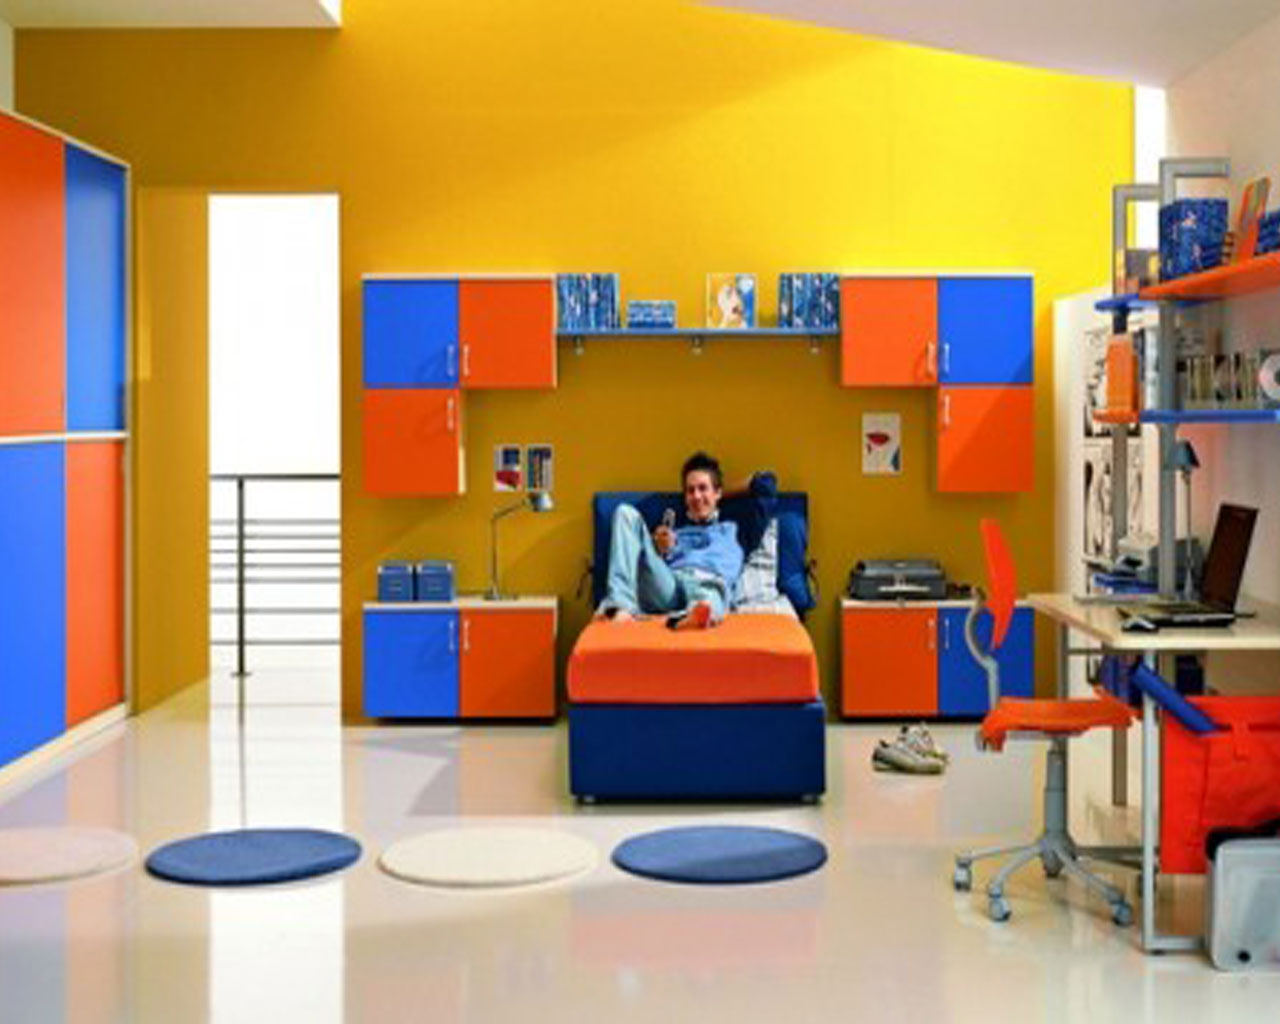 Colorful Kids Bedroom Idea with Yellow Wall, Orange and Blue Shelving